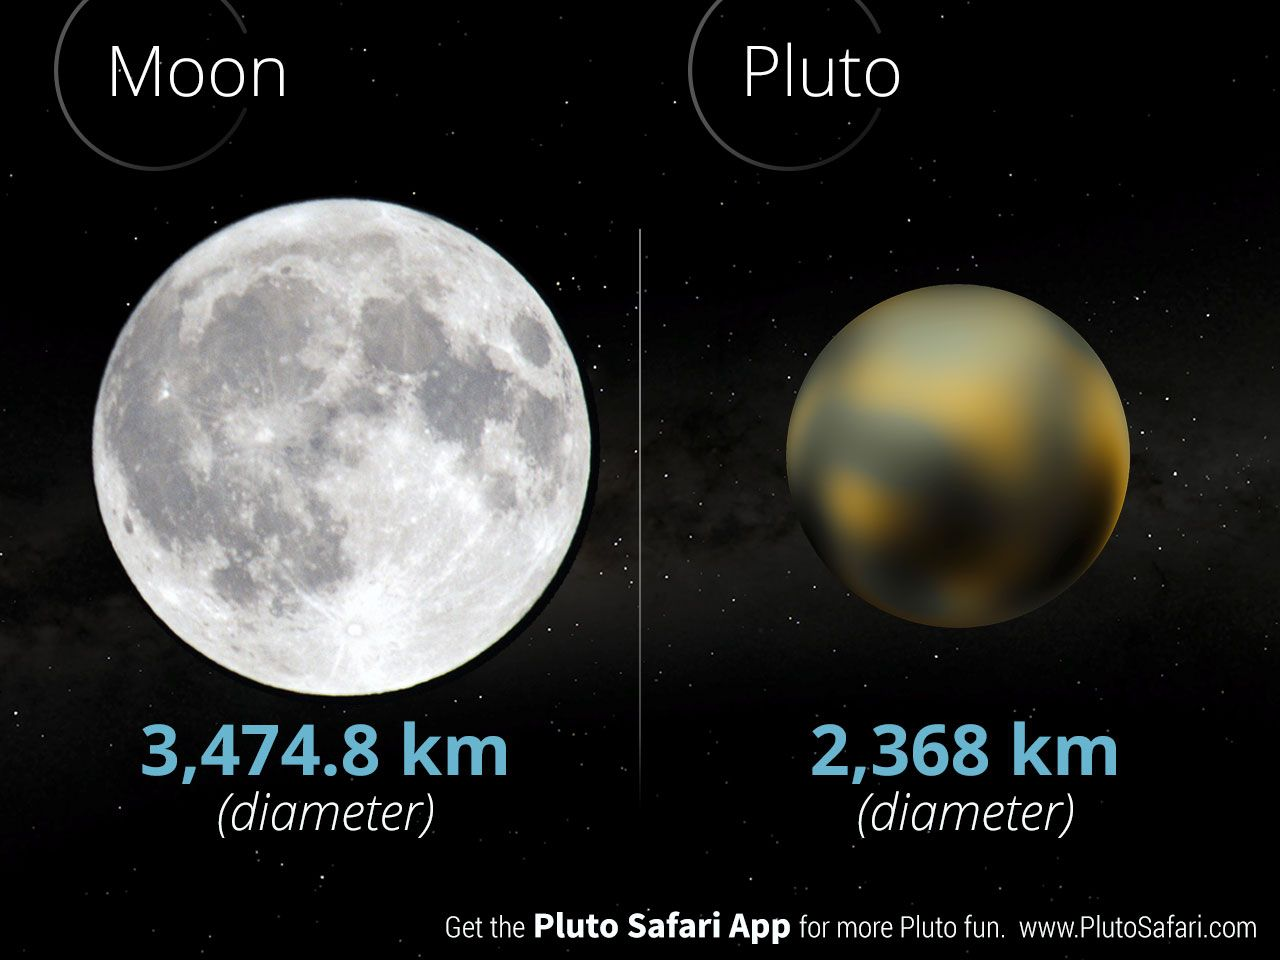 Pluto's diameter compared to the Moon | Pluto, Dwarf ...